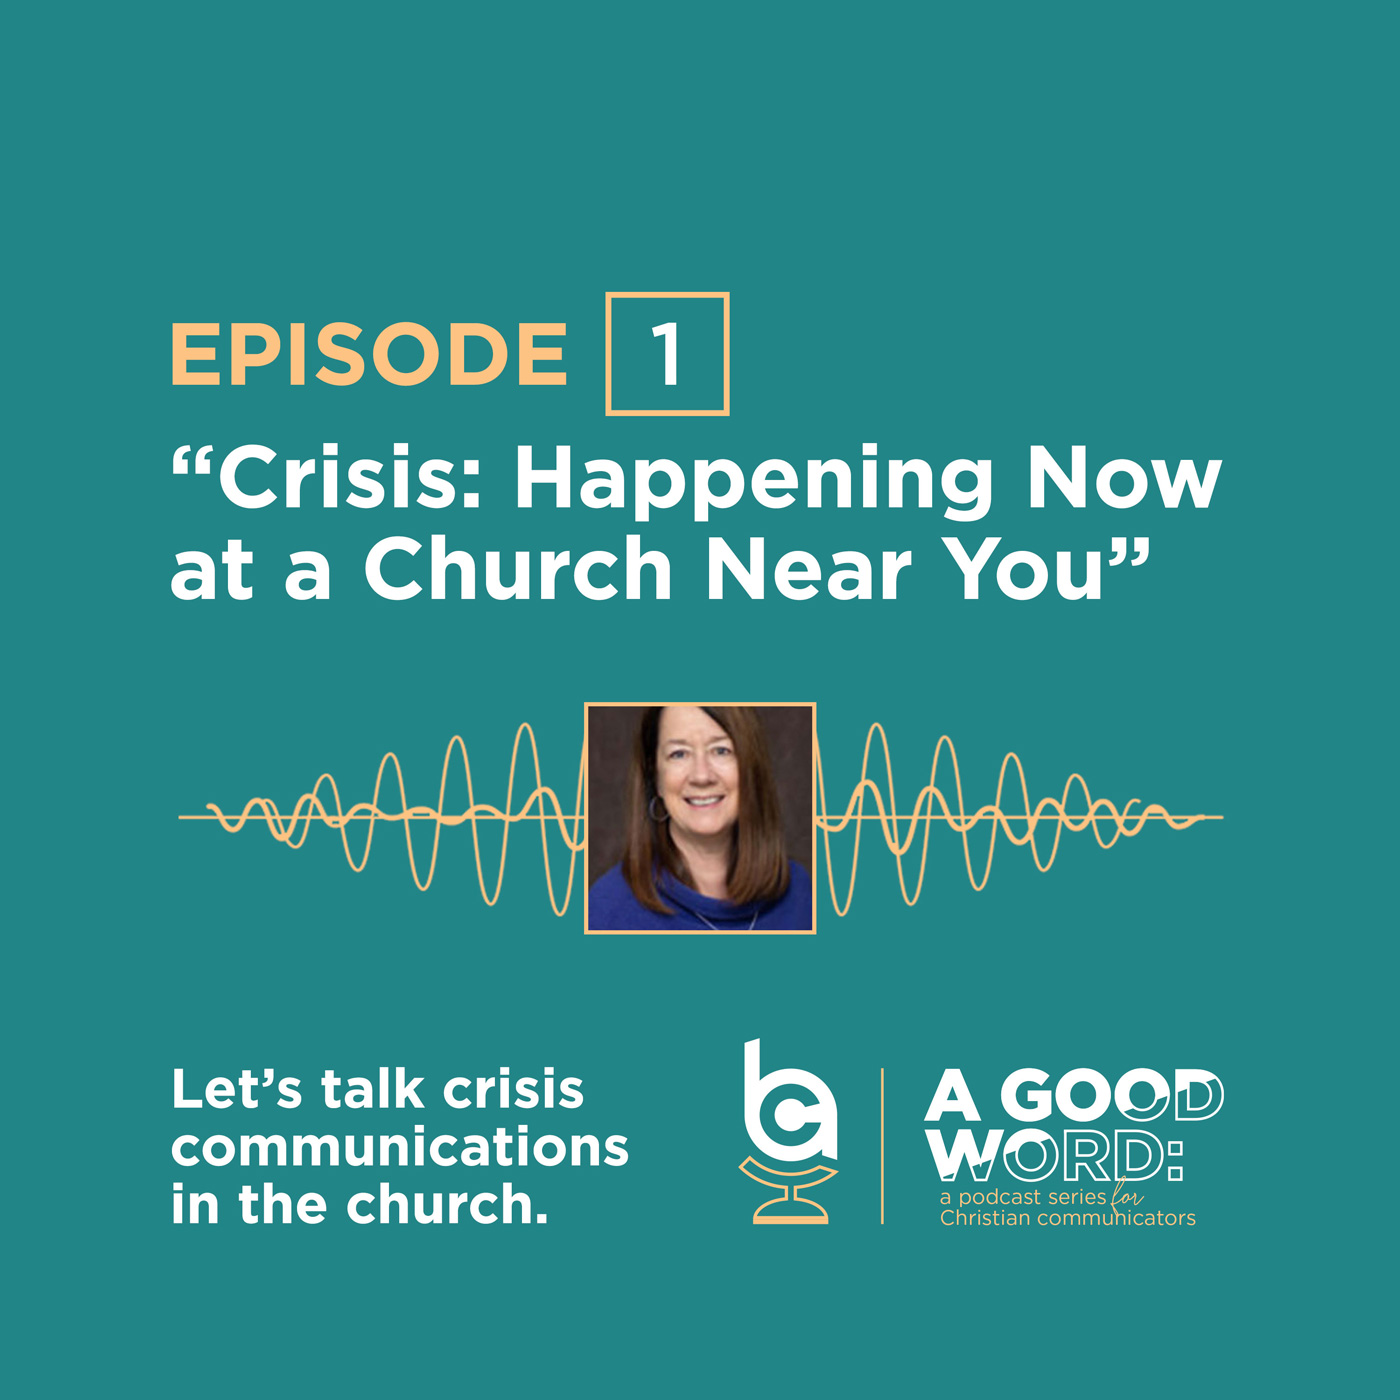 Episode 1: Crisis: Happening Now at a Church Near You